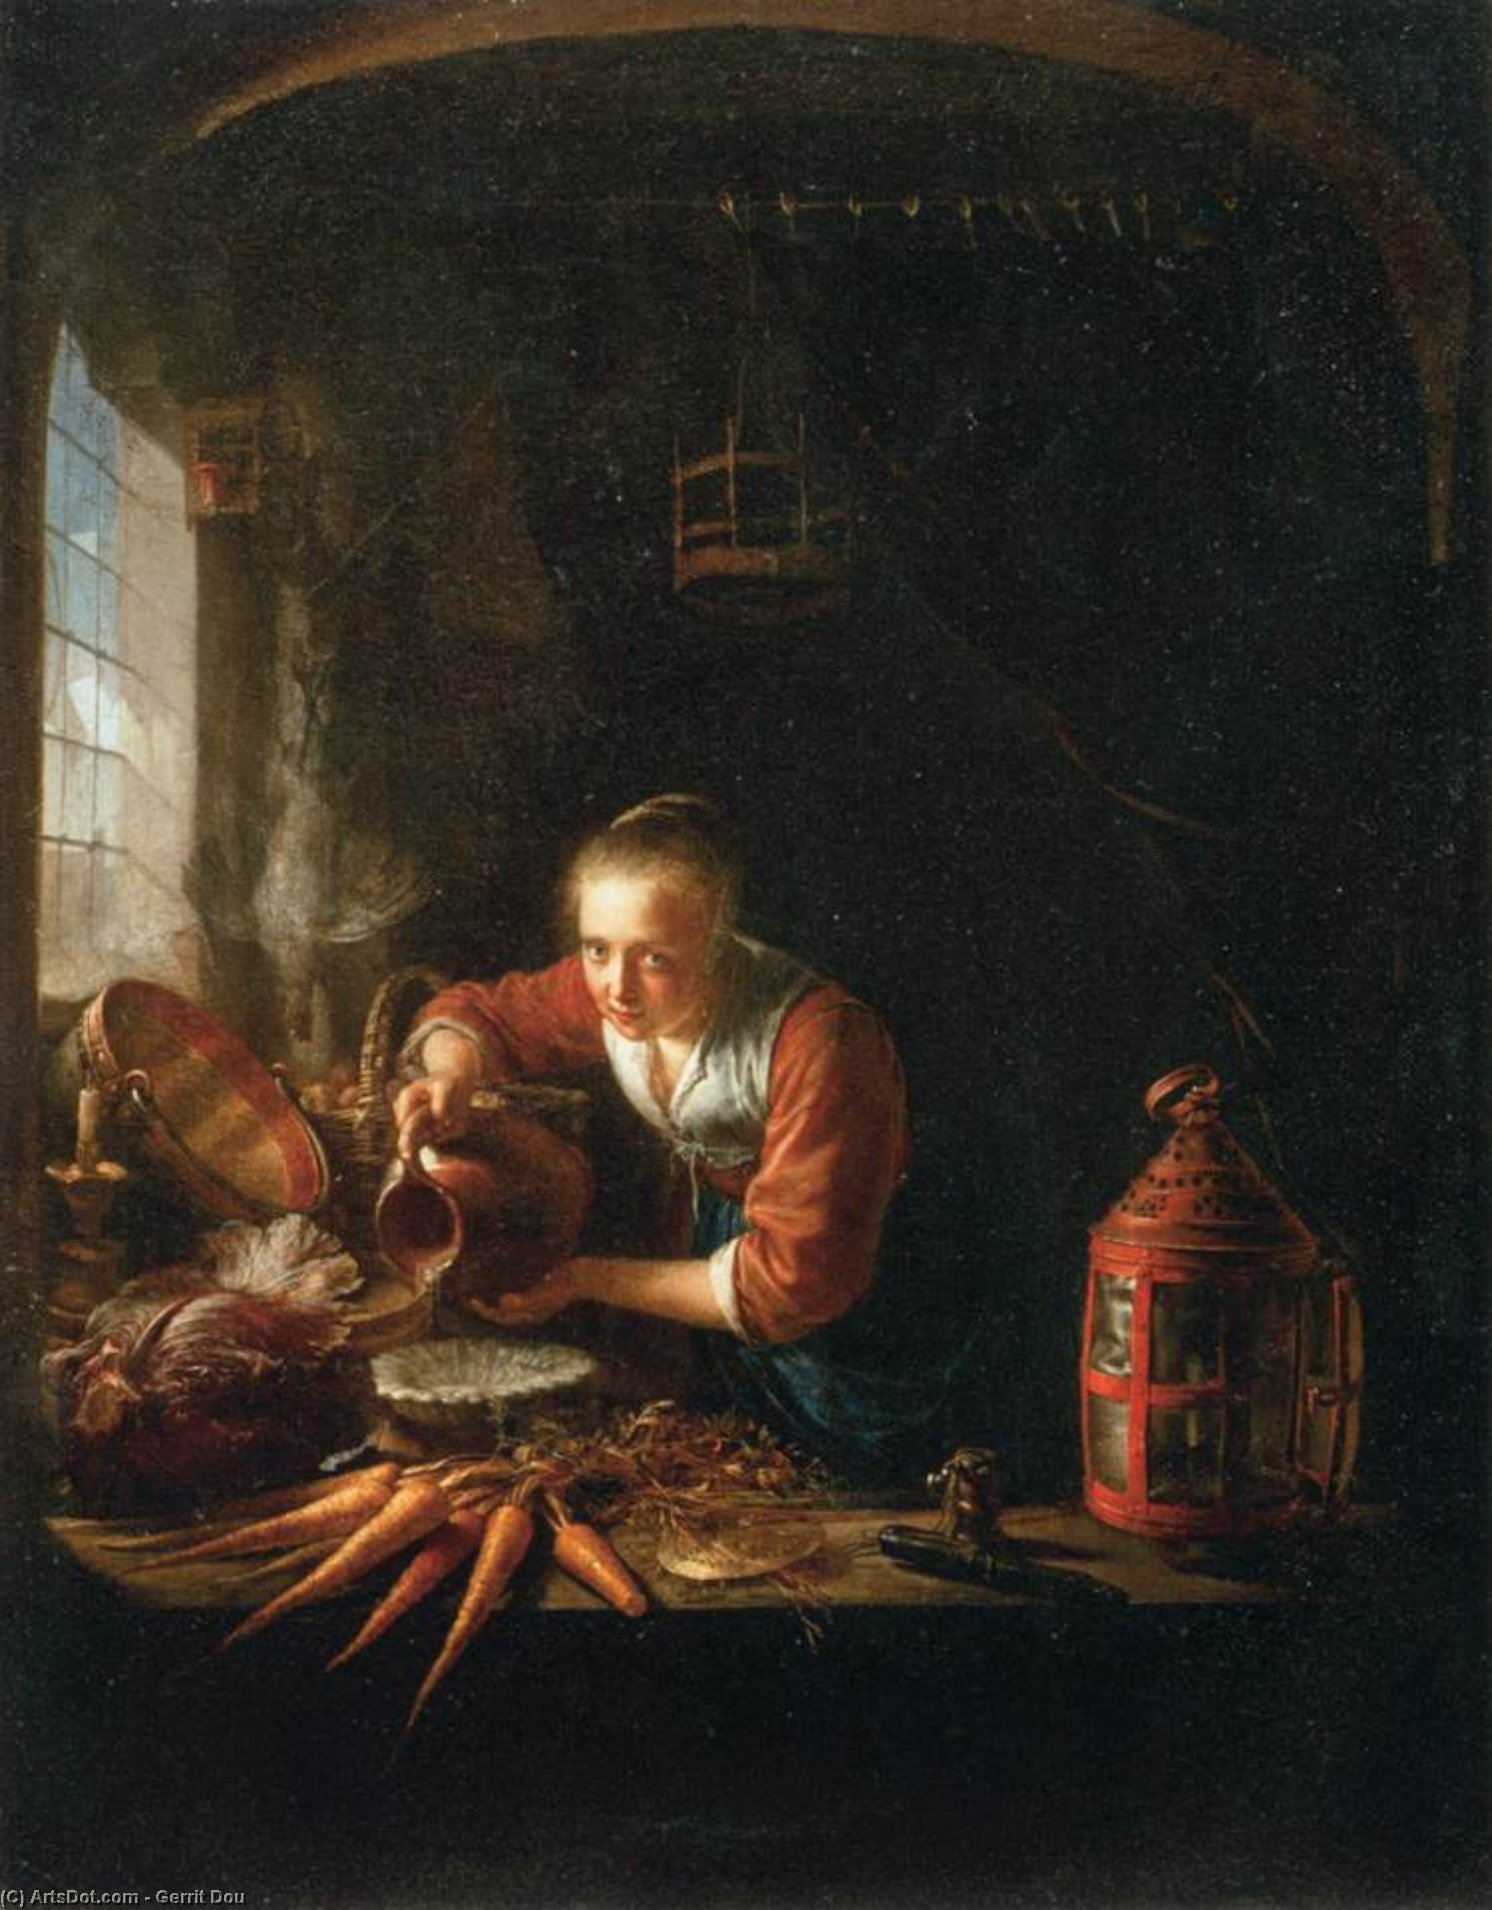 Woman Pouring Water into a Jar, Oil by Gerrit (Gérard) Dou (1613-1675, Netherlands)